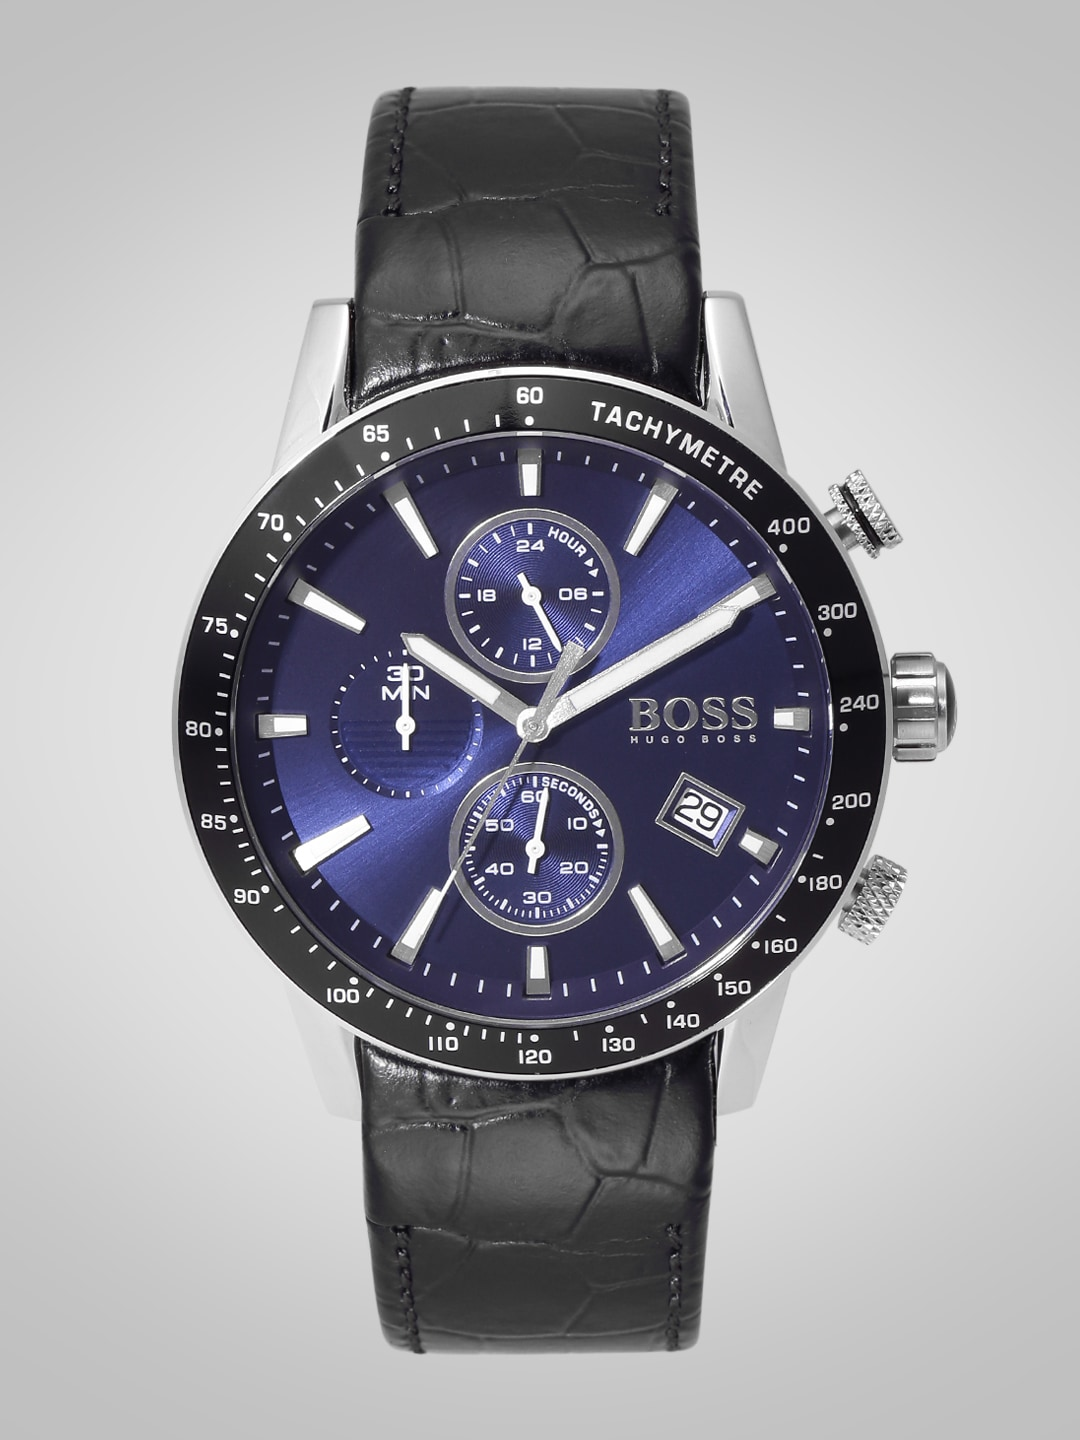 0ead4f66ee6 No 2 Watches - Buy No 2 Watches online in India